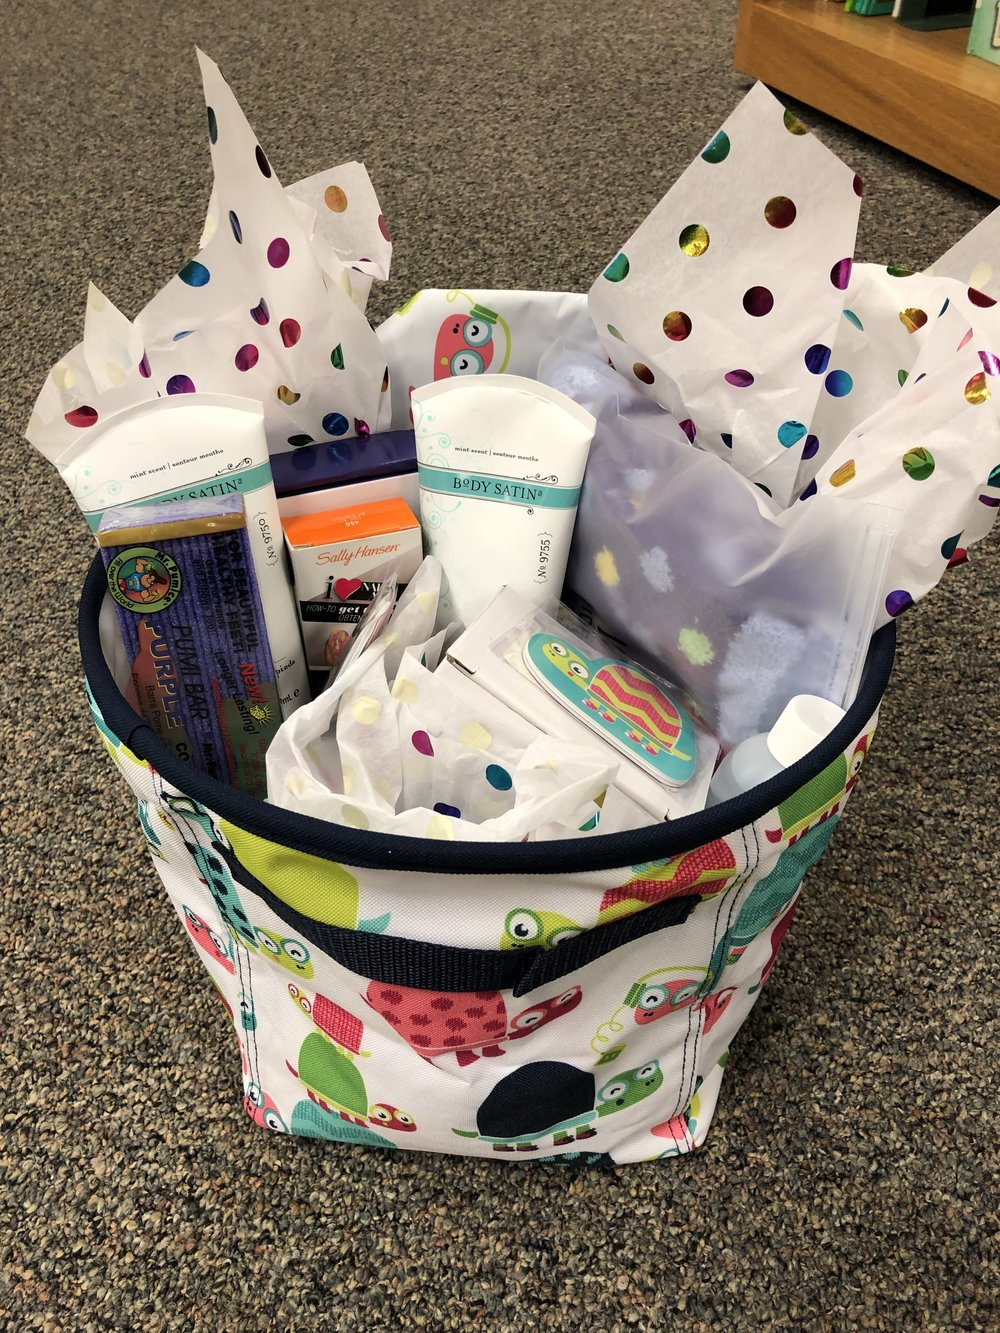 Spa Day   Pamper even the littlest toes with this basket of lotions, polishes and cozy spa socks.